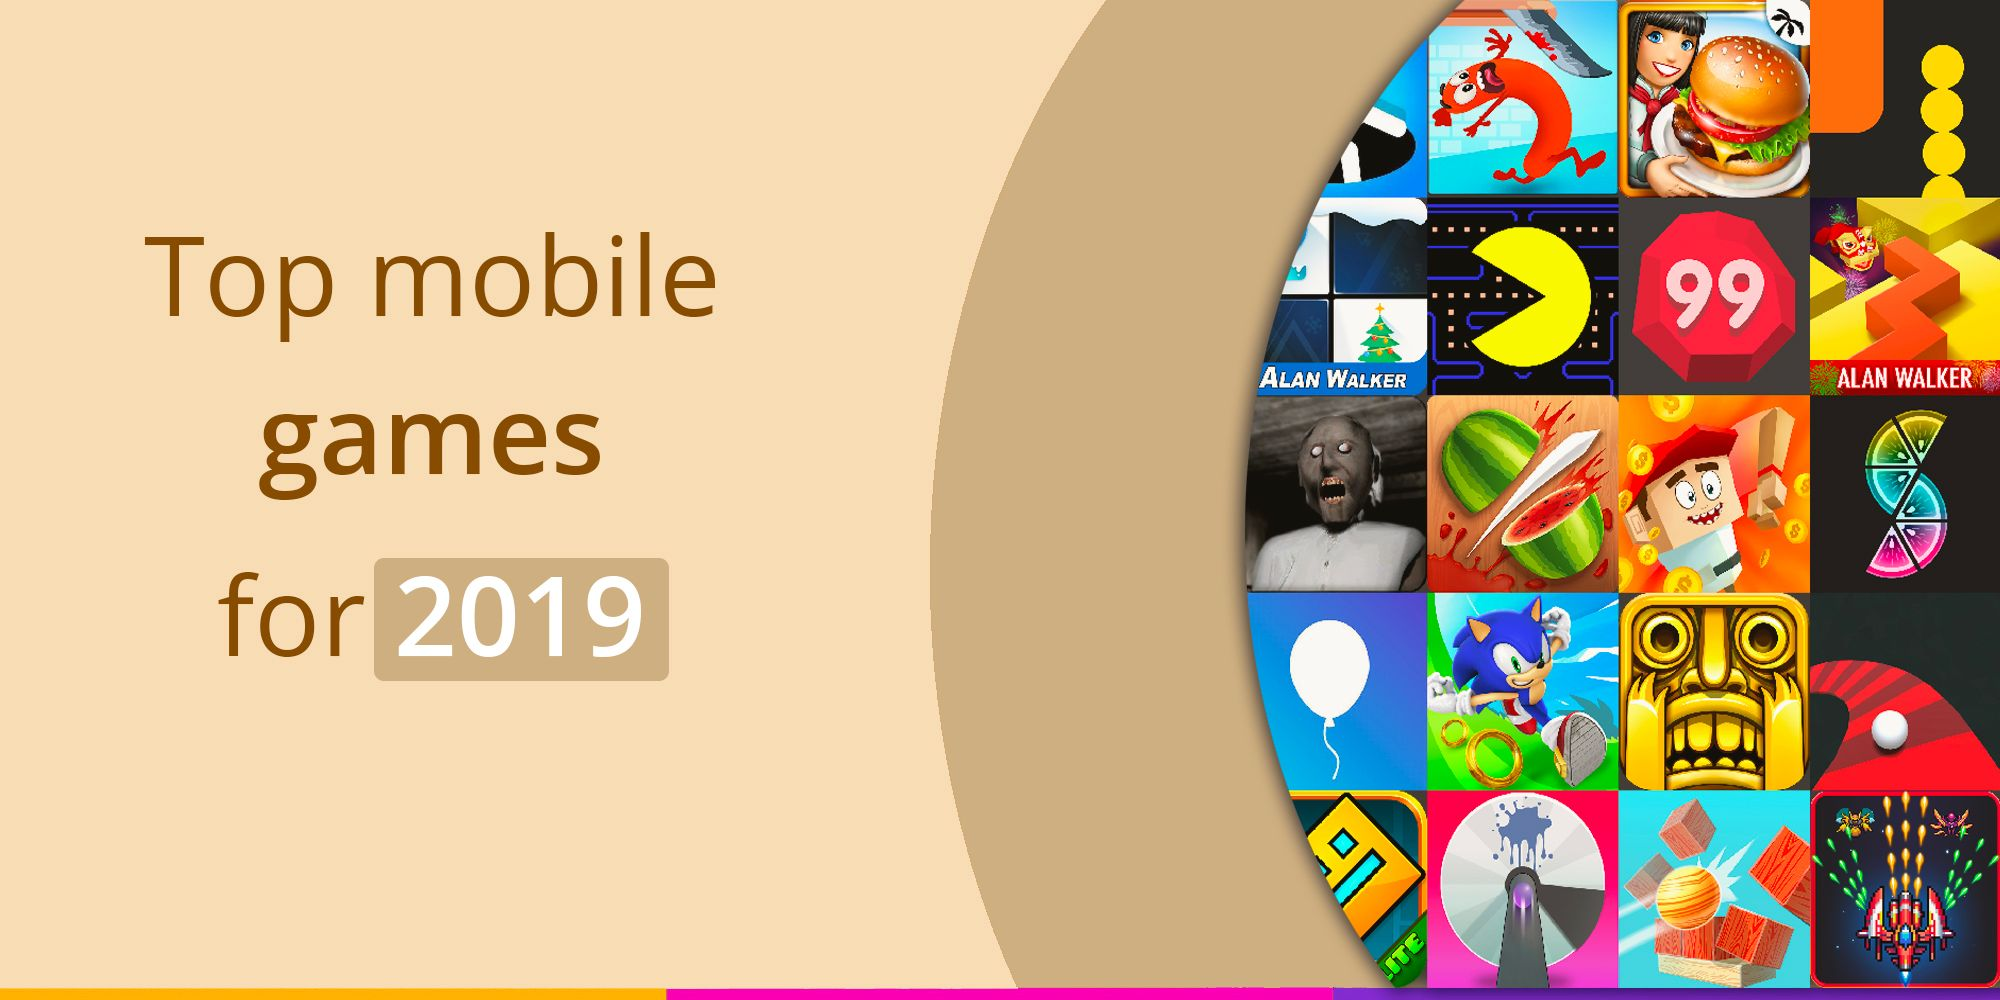 Best mobile games in 2019